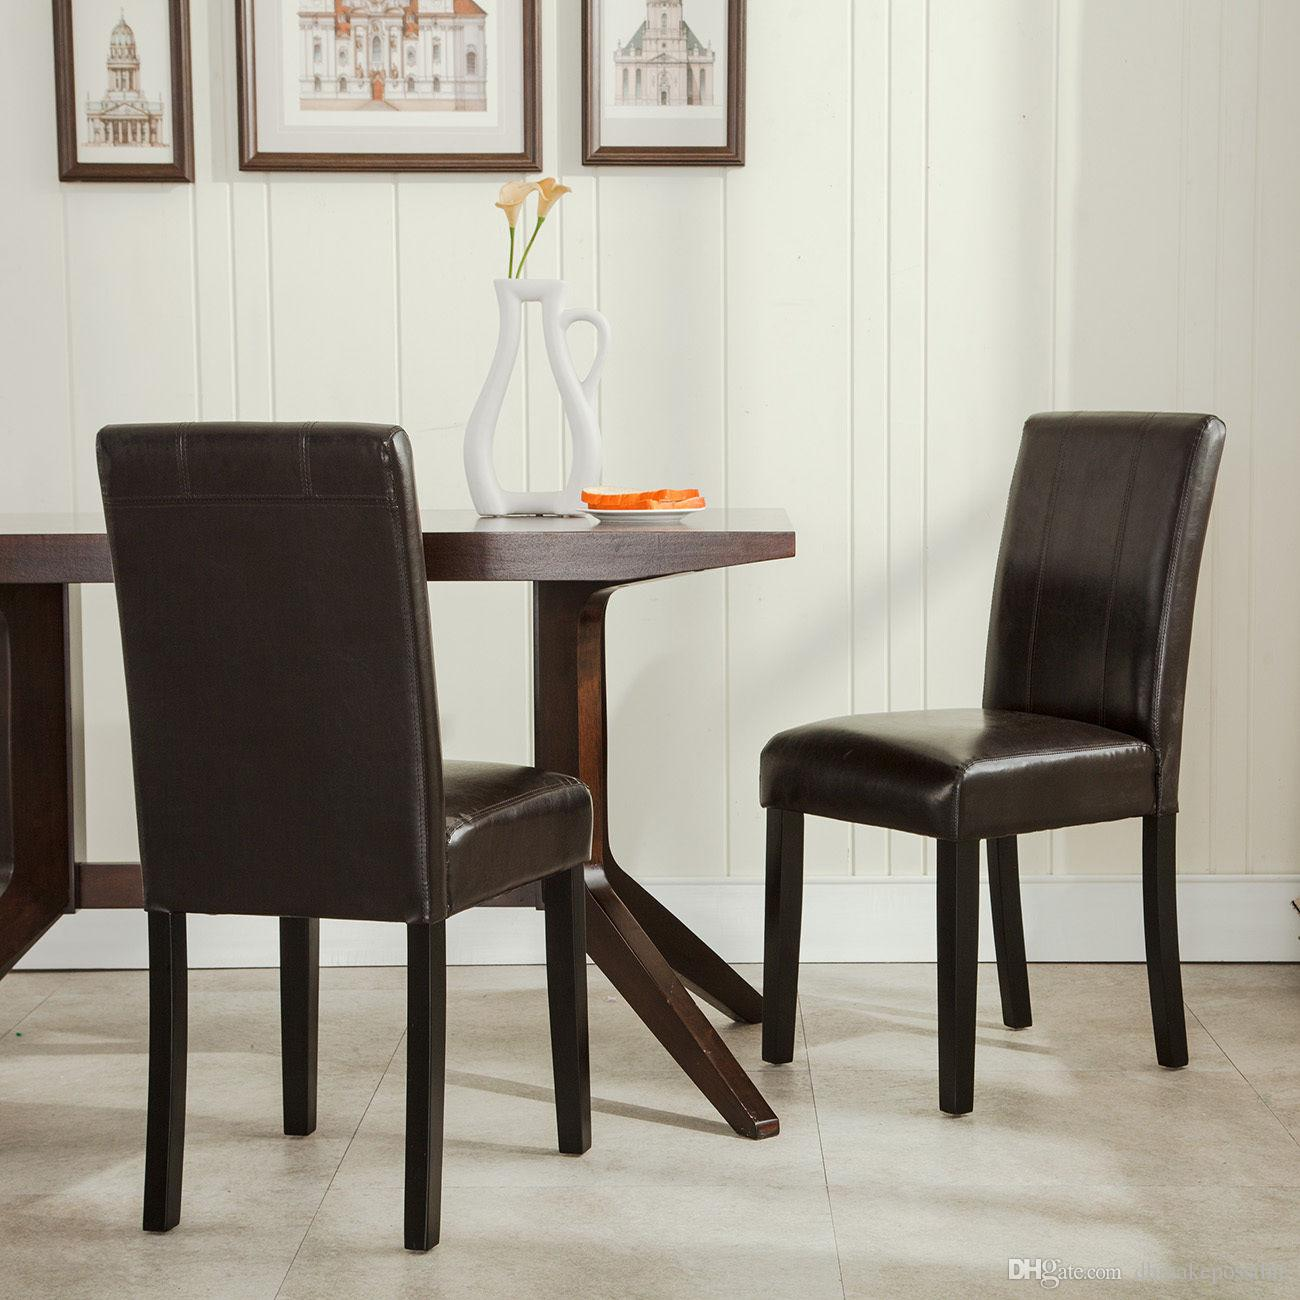 Of 2 Elegant Design Furniture Leather Parsons Dining Room Chairs Seat Brown From Dhmakepossible 63 92 Dhgate Com